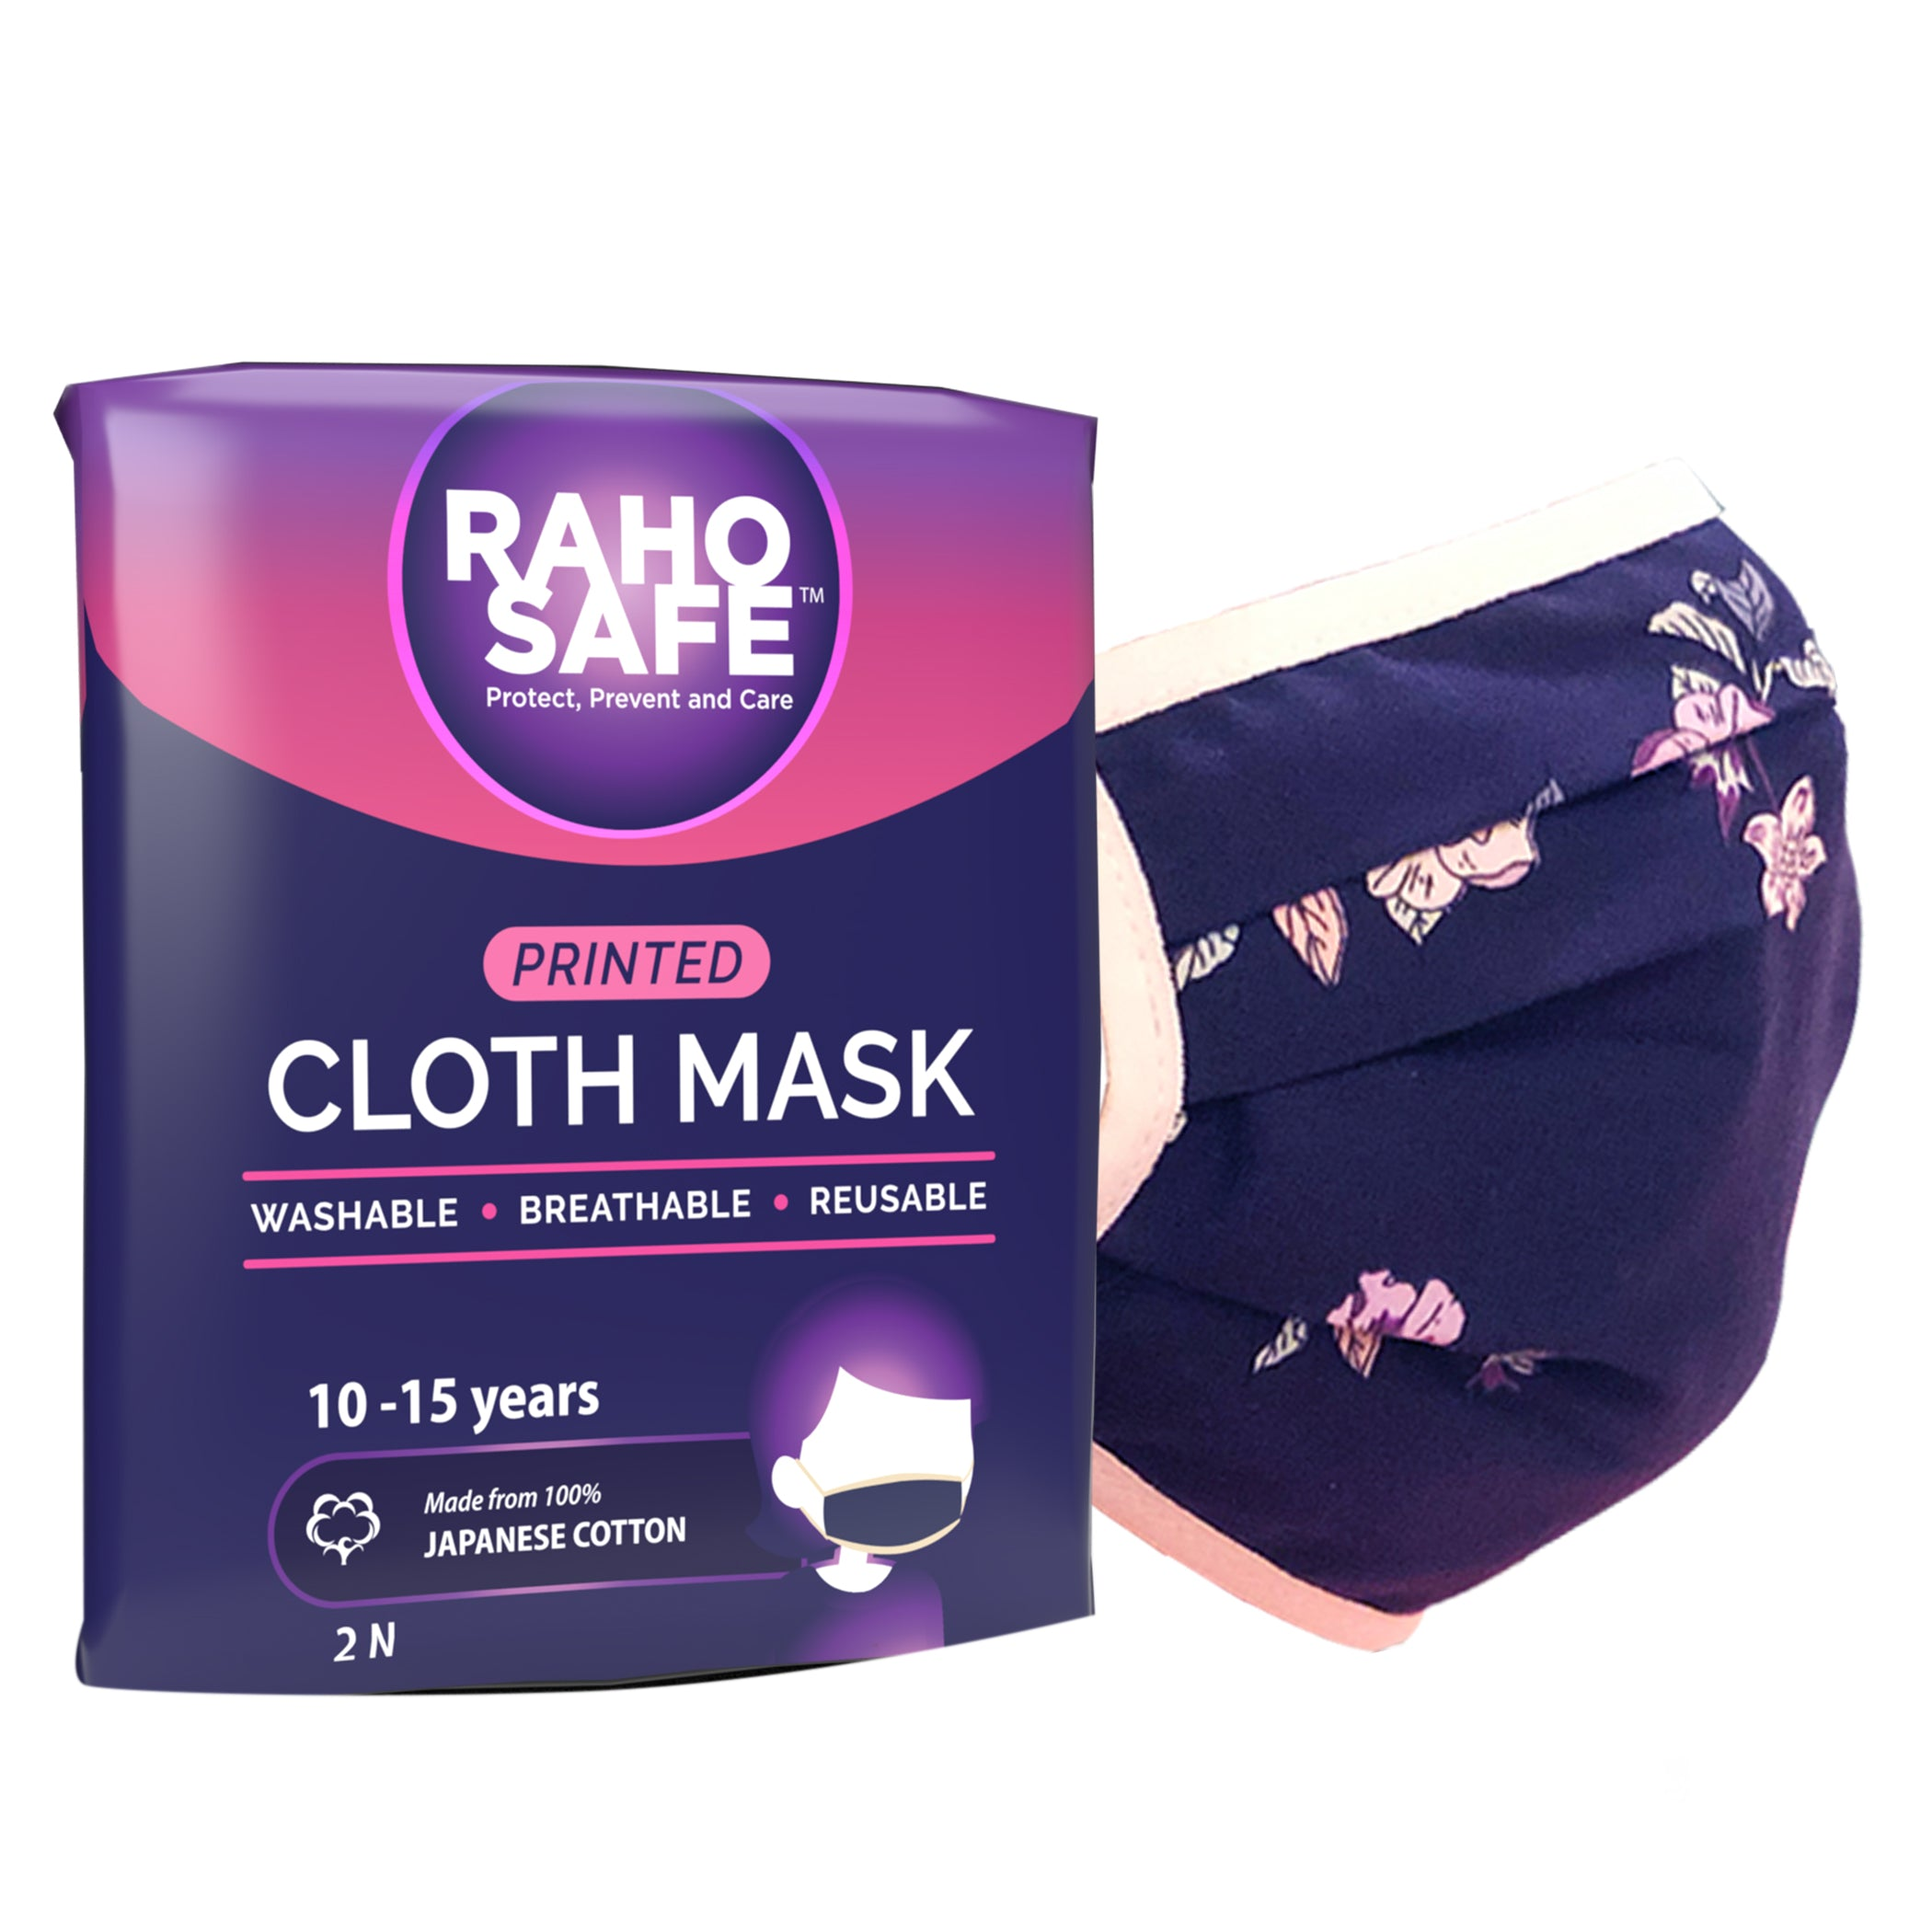 Printed Cloth Mask (Pack of 2) - Medium